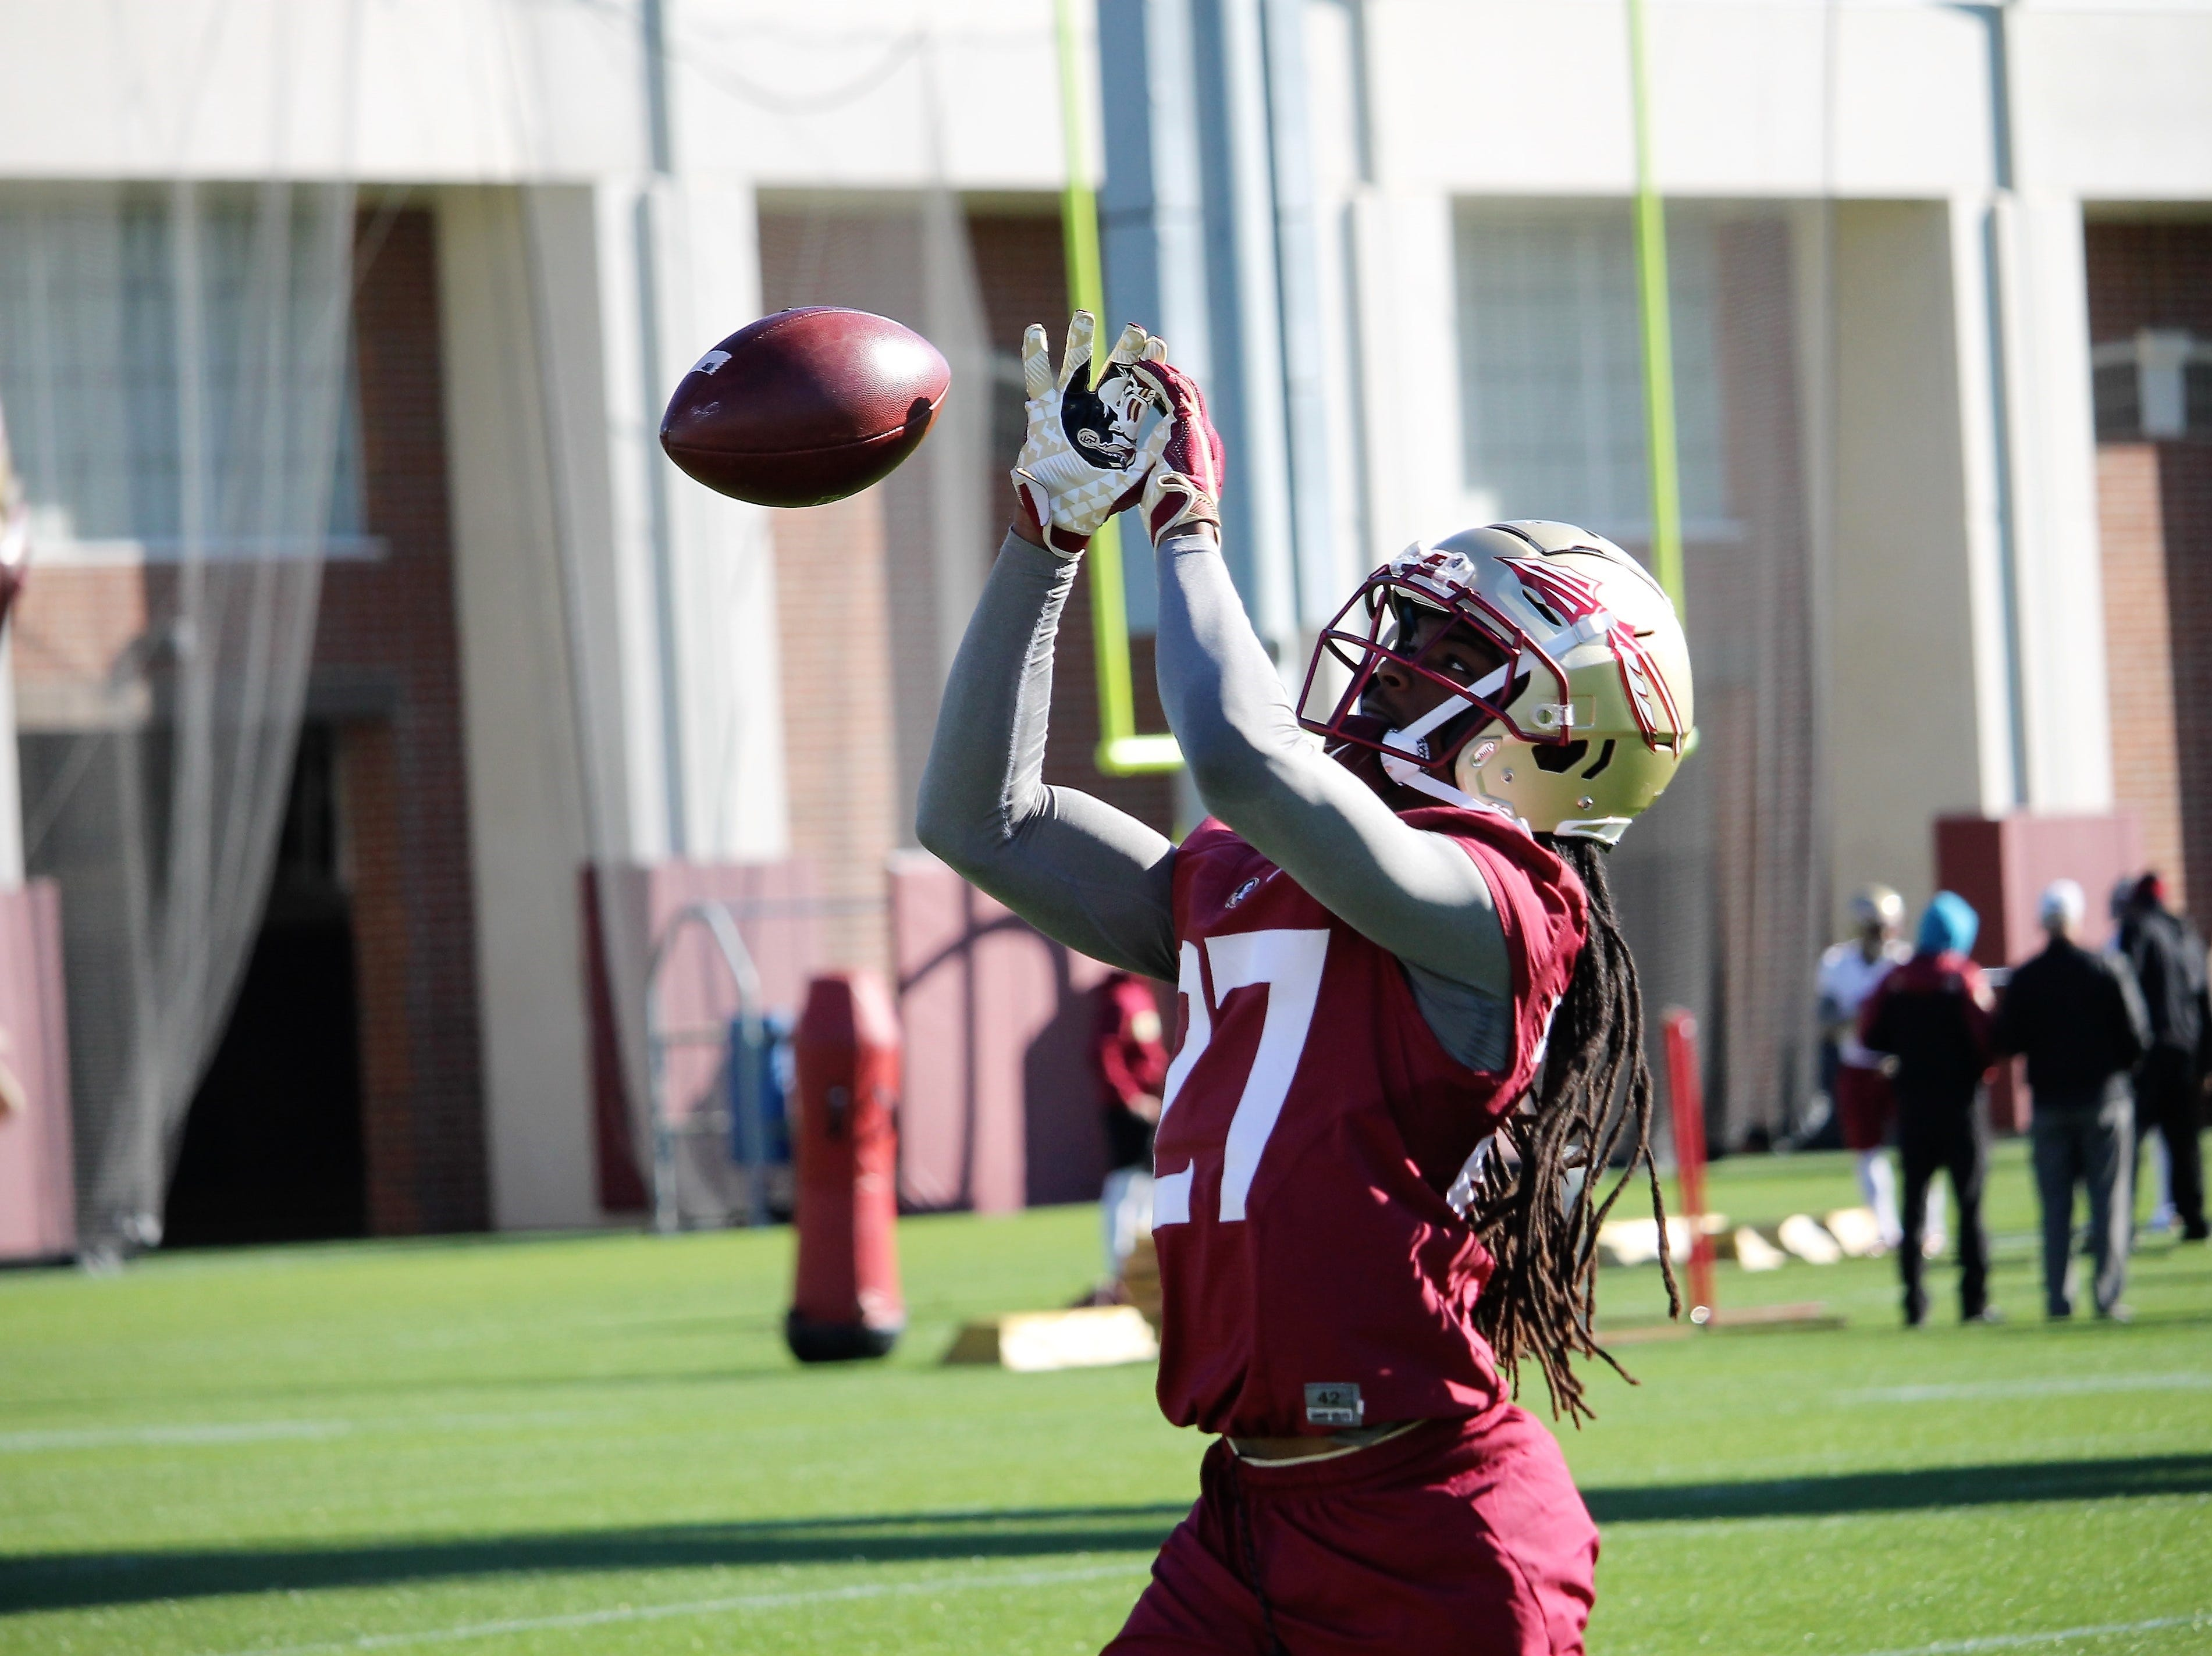 Defensive back Akeem Dent at FSU football practice on March 6, 2019.